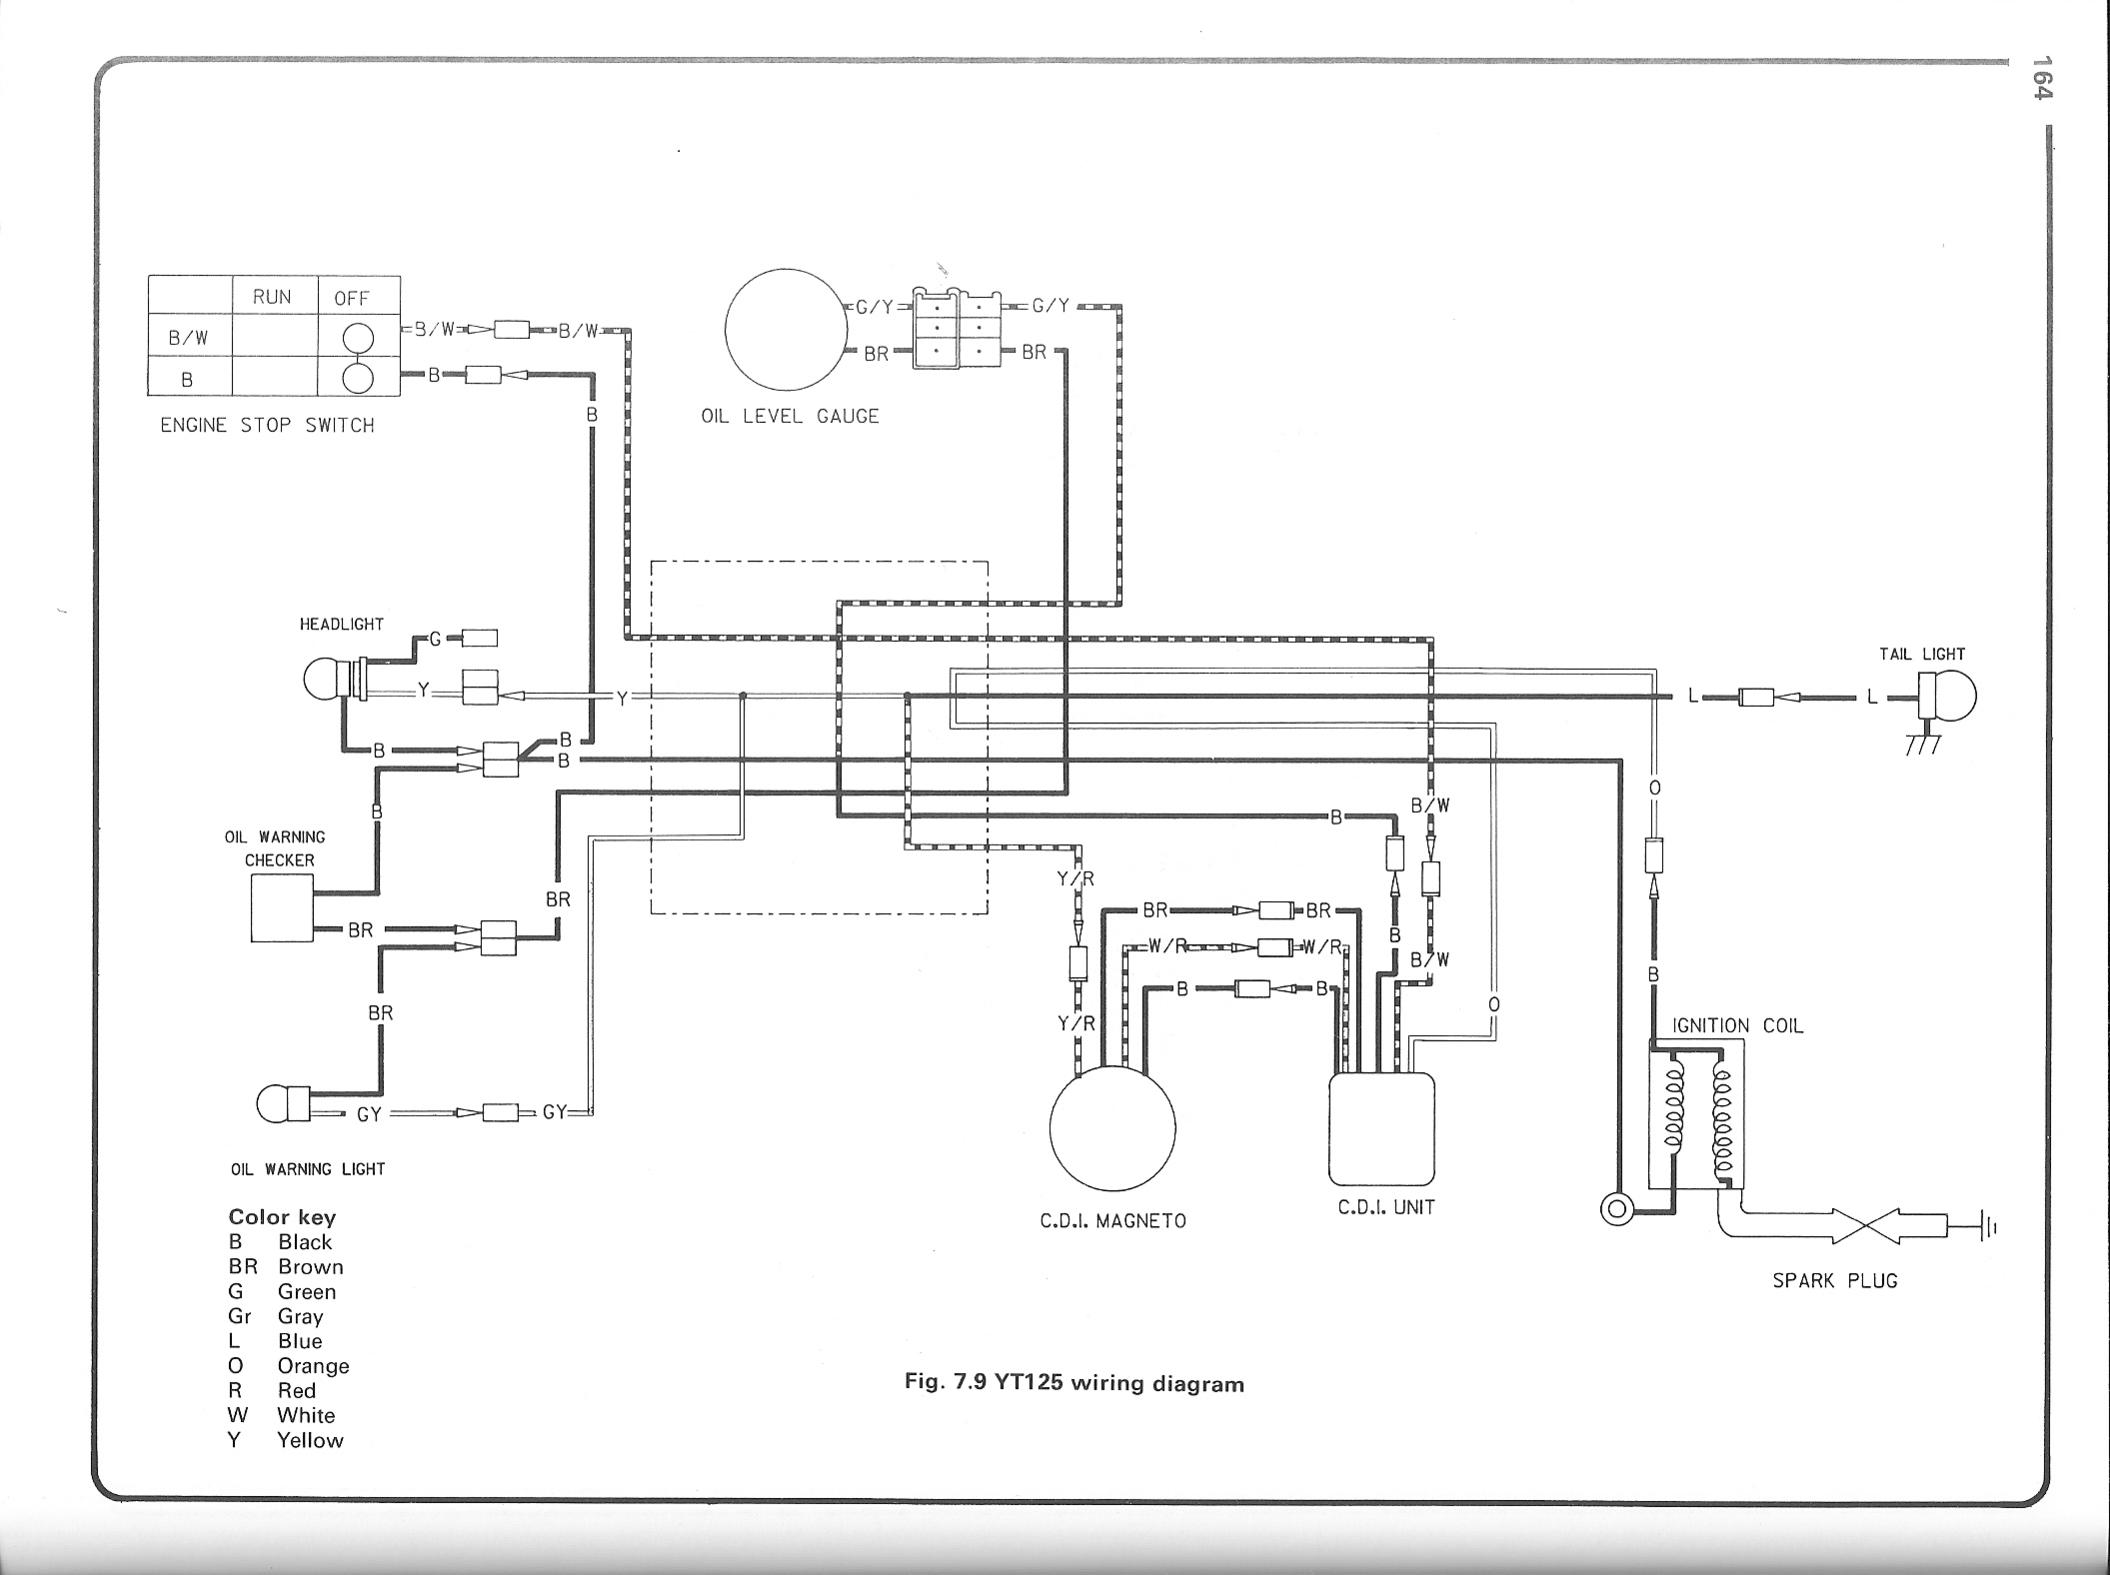 [DIAGRAM_4FR]  198B 84 Yamaha 225 Dx Wiring | Wiring Resources | Wiring Diagram For Yahama Ytm 225dx |  | Wiring Resources